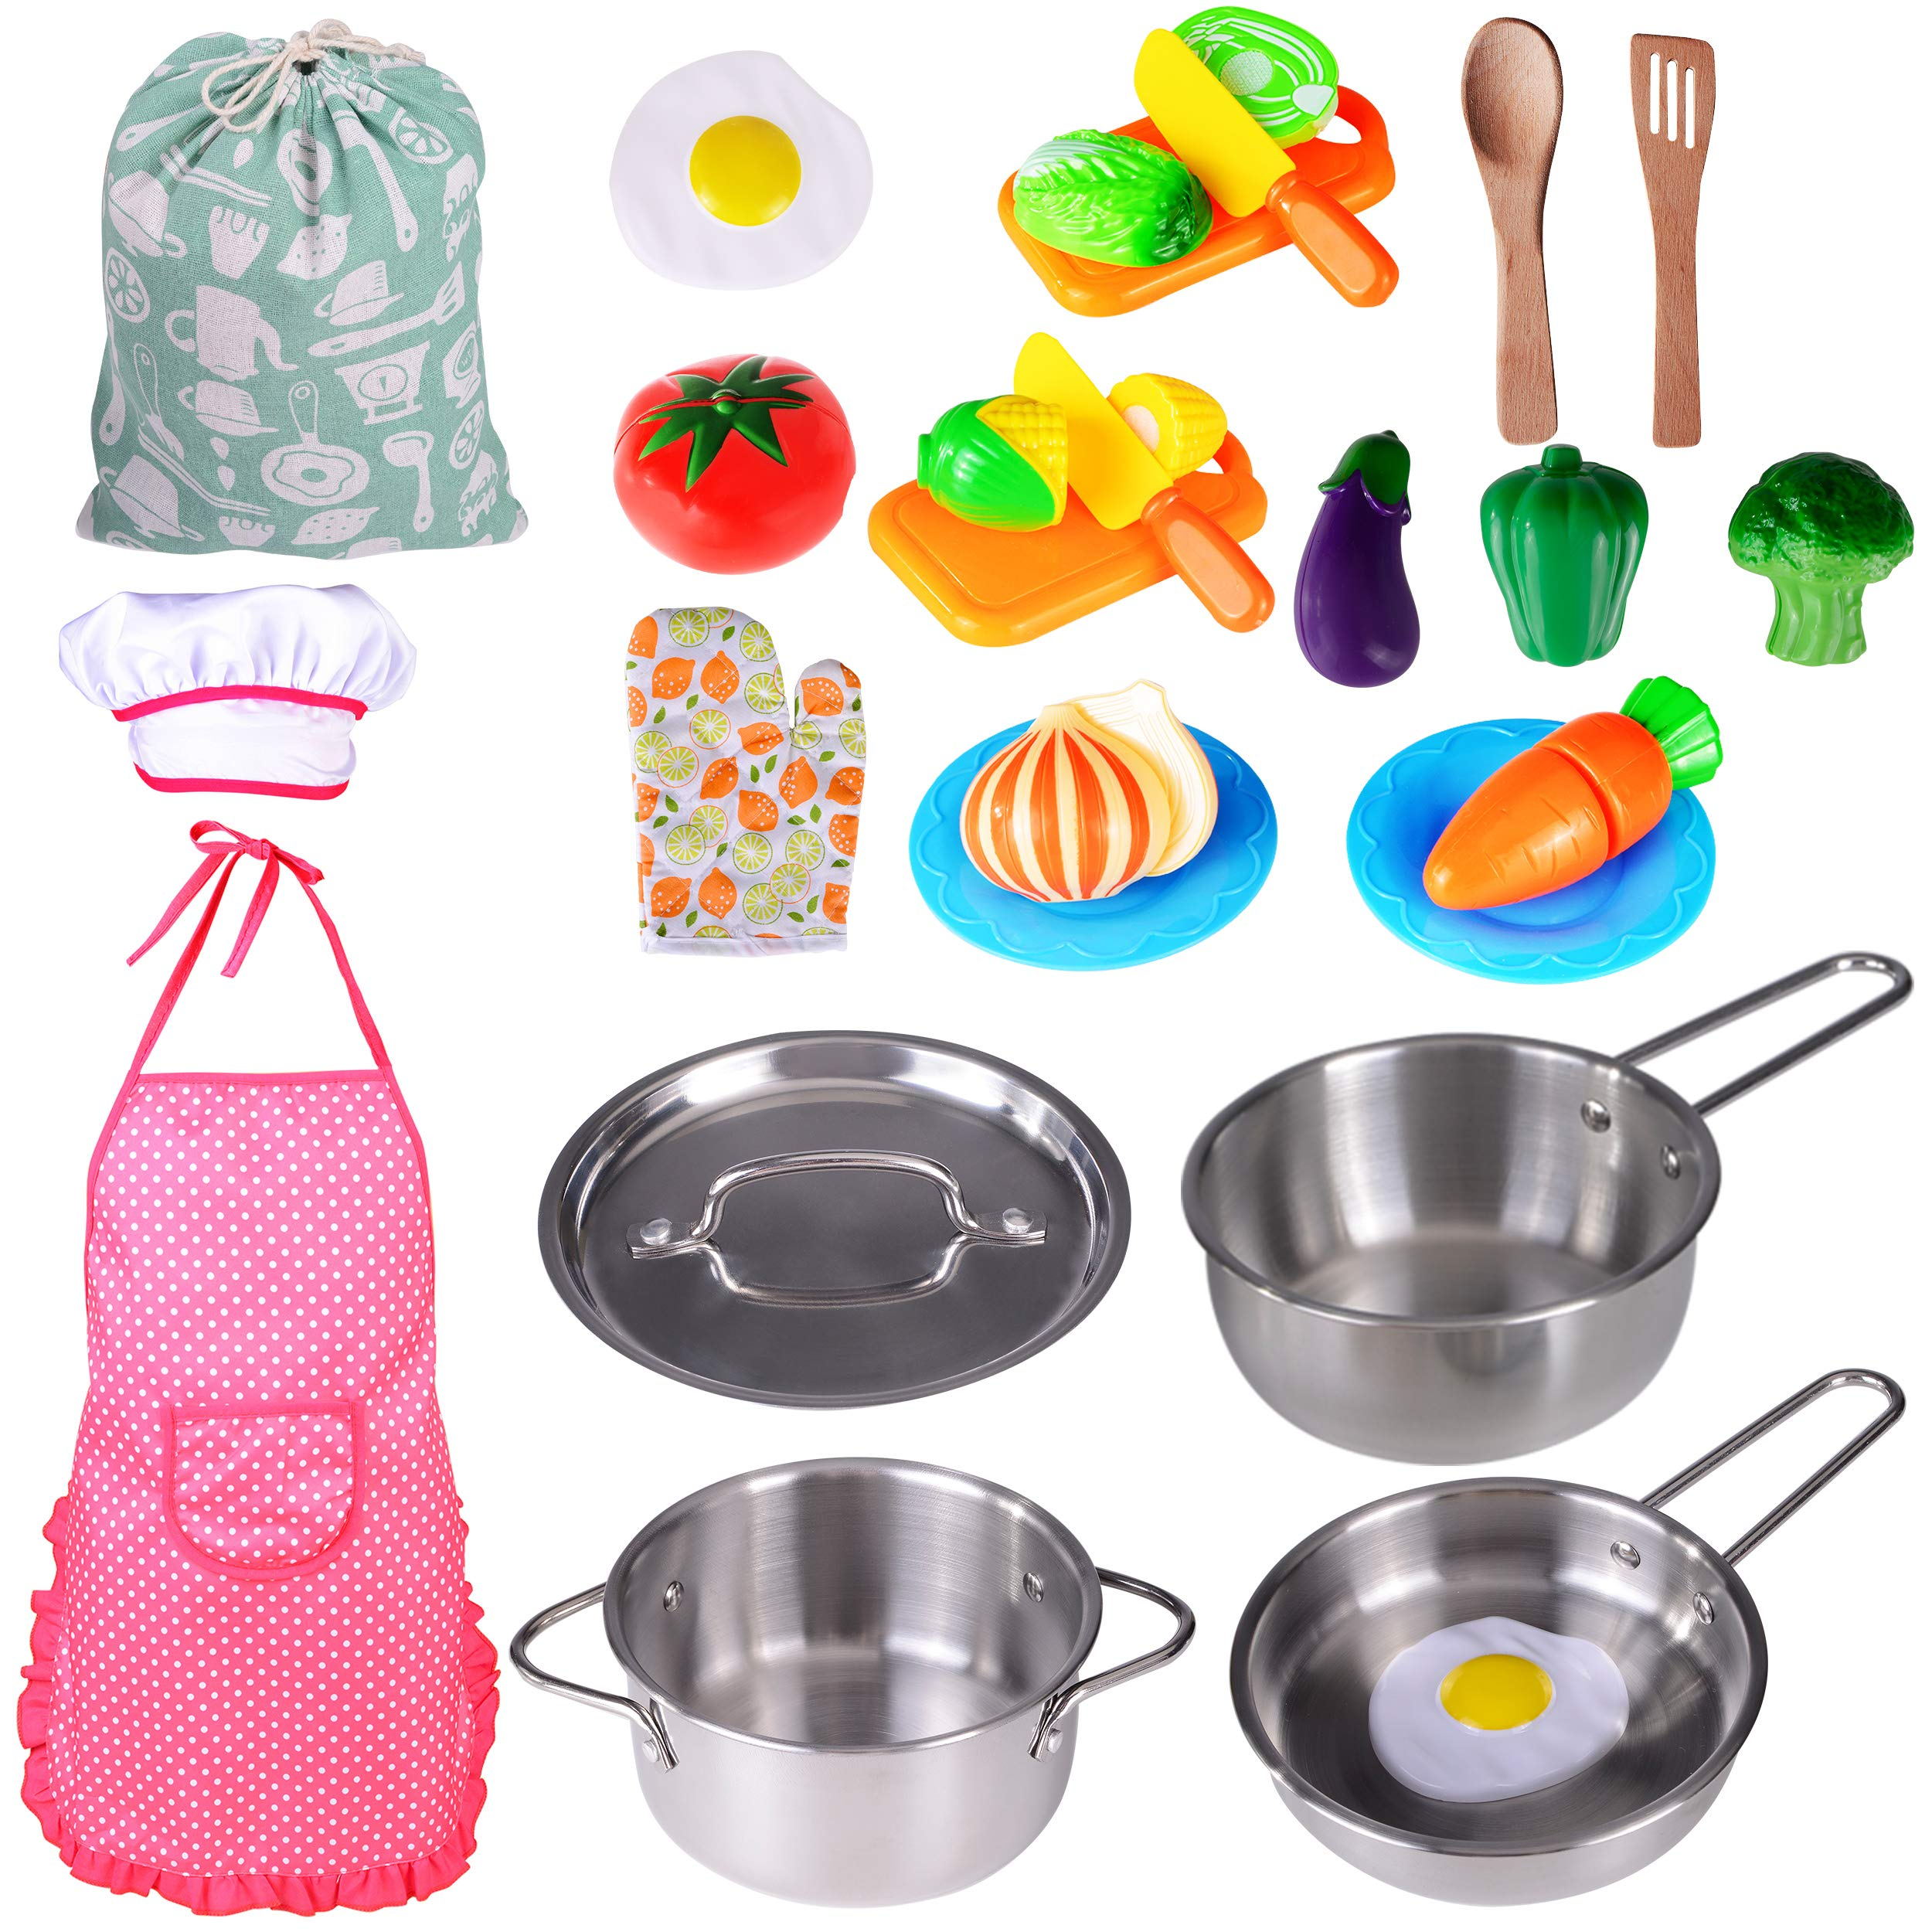 Kitchen Playset Accessories Toys - Stainless Steel Cookware Pots and Pans Set, Cooking Utensils, Apron, Chef Hat, and Cutting Play Food for Kids, Toddler and Boys Girls by KRATO